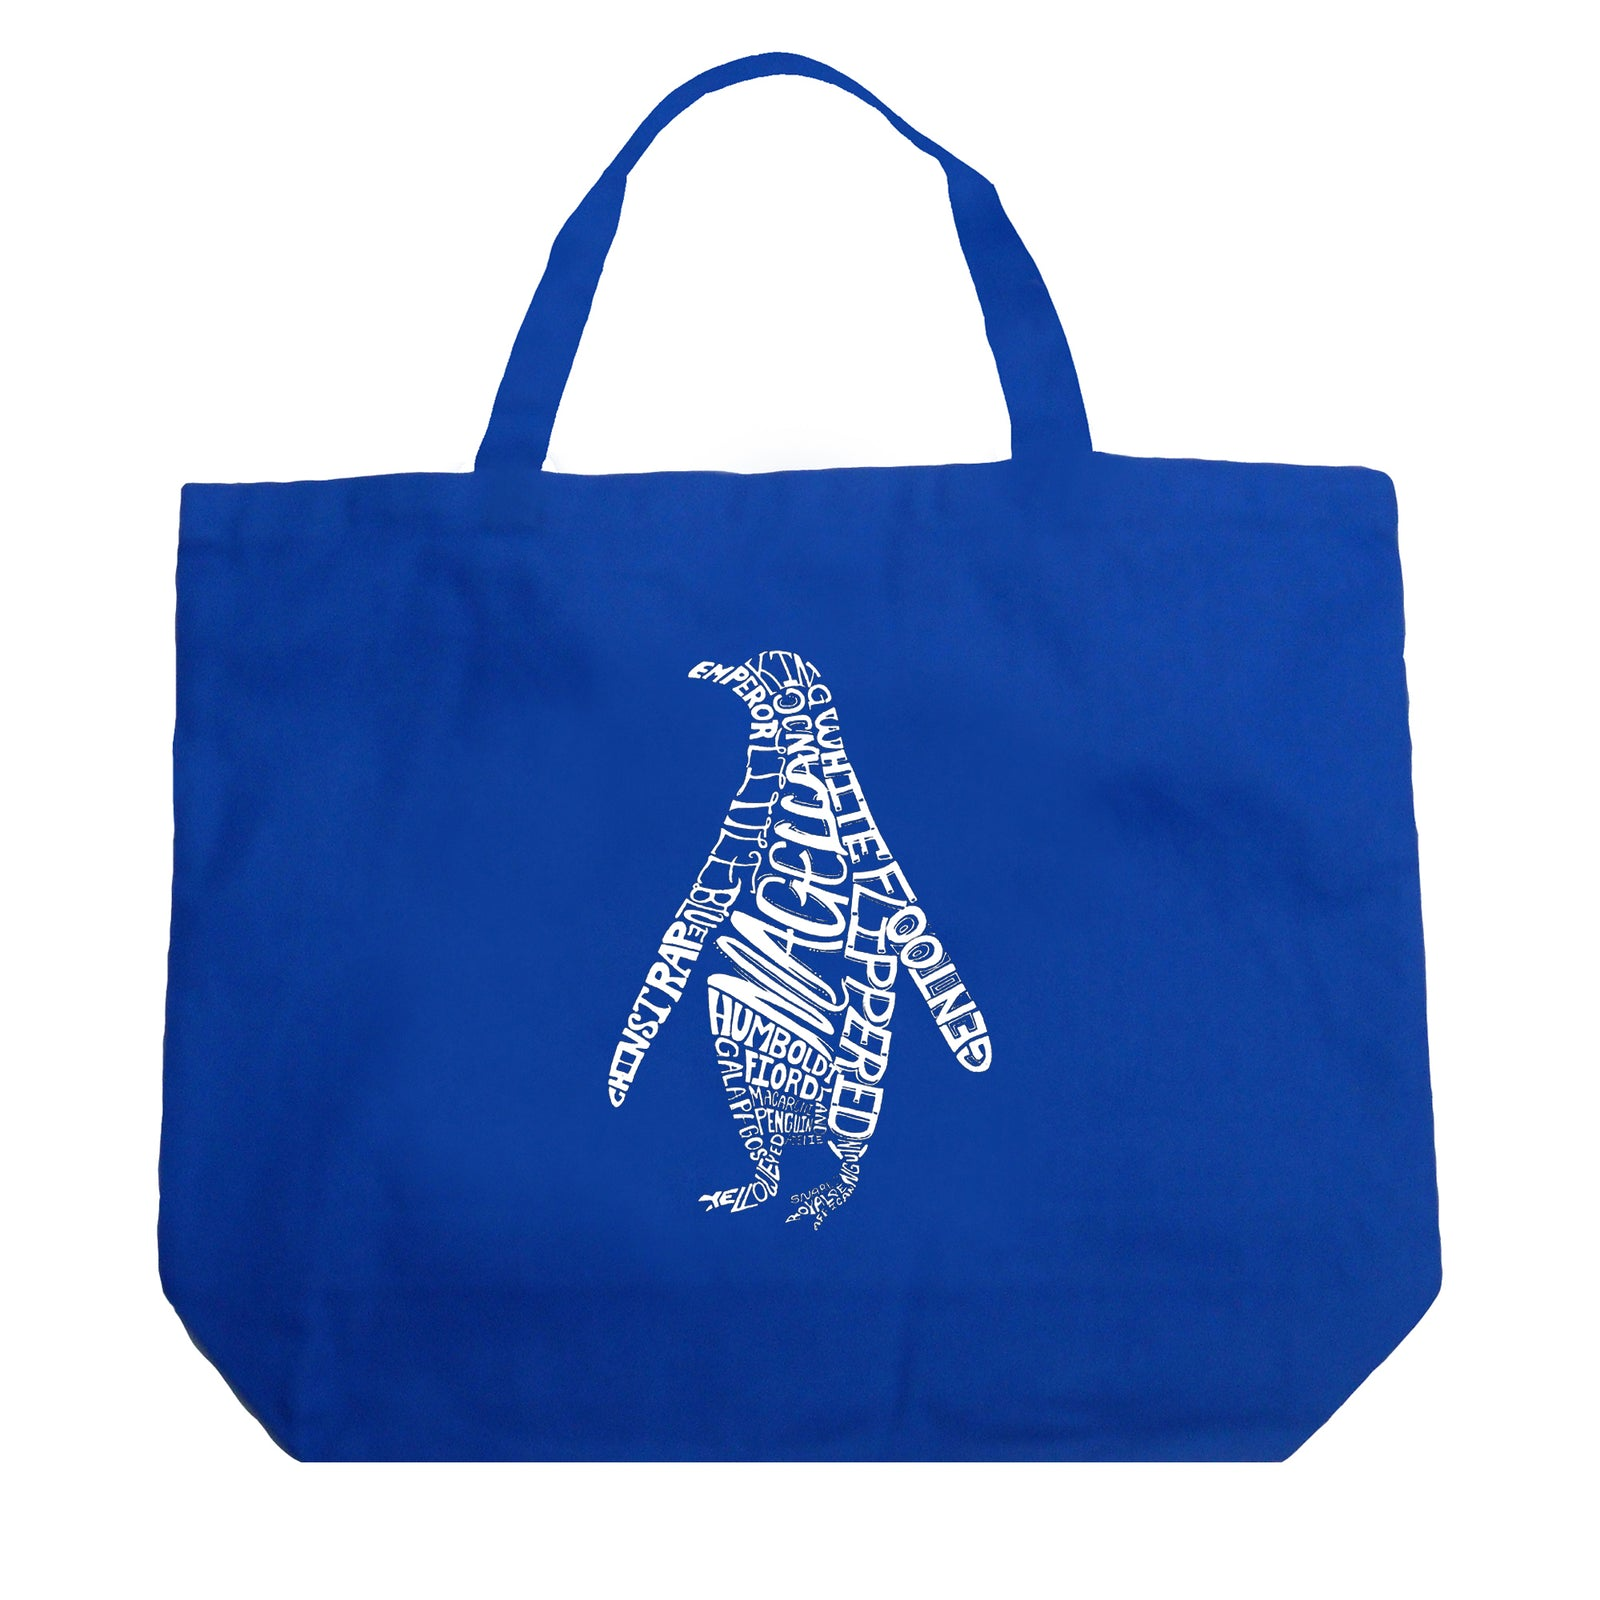 Los Angeles Pop Art Large Tote Bag - Penguin